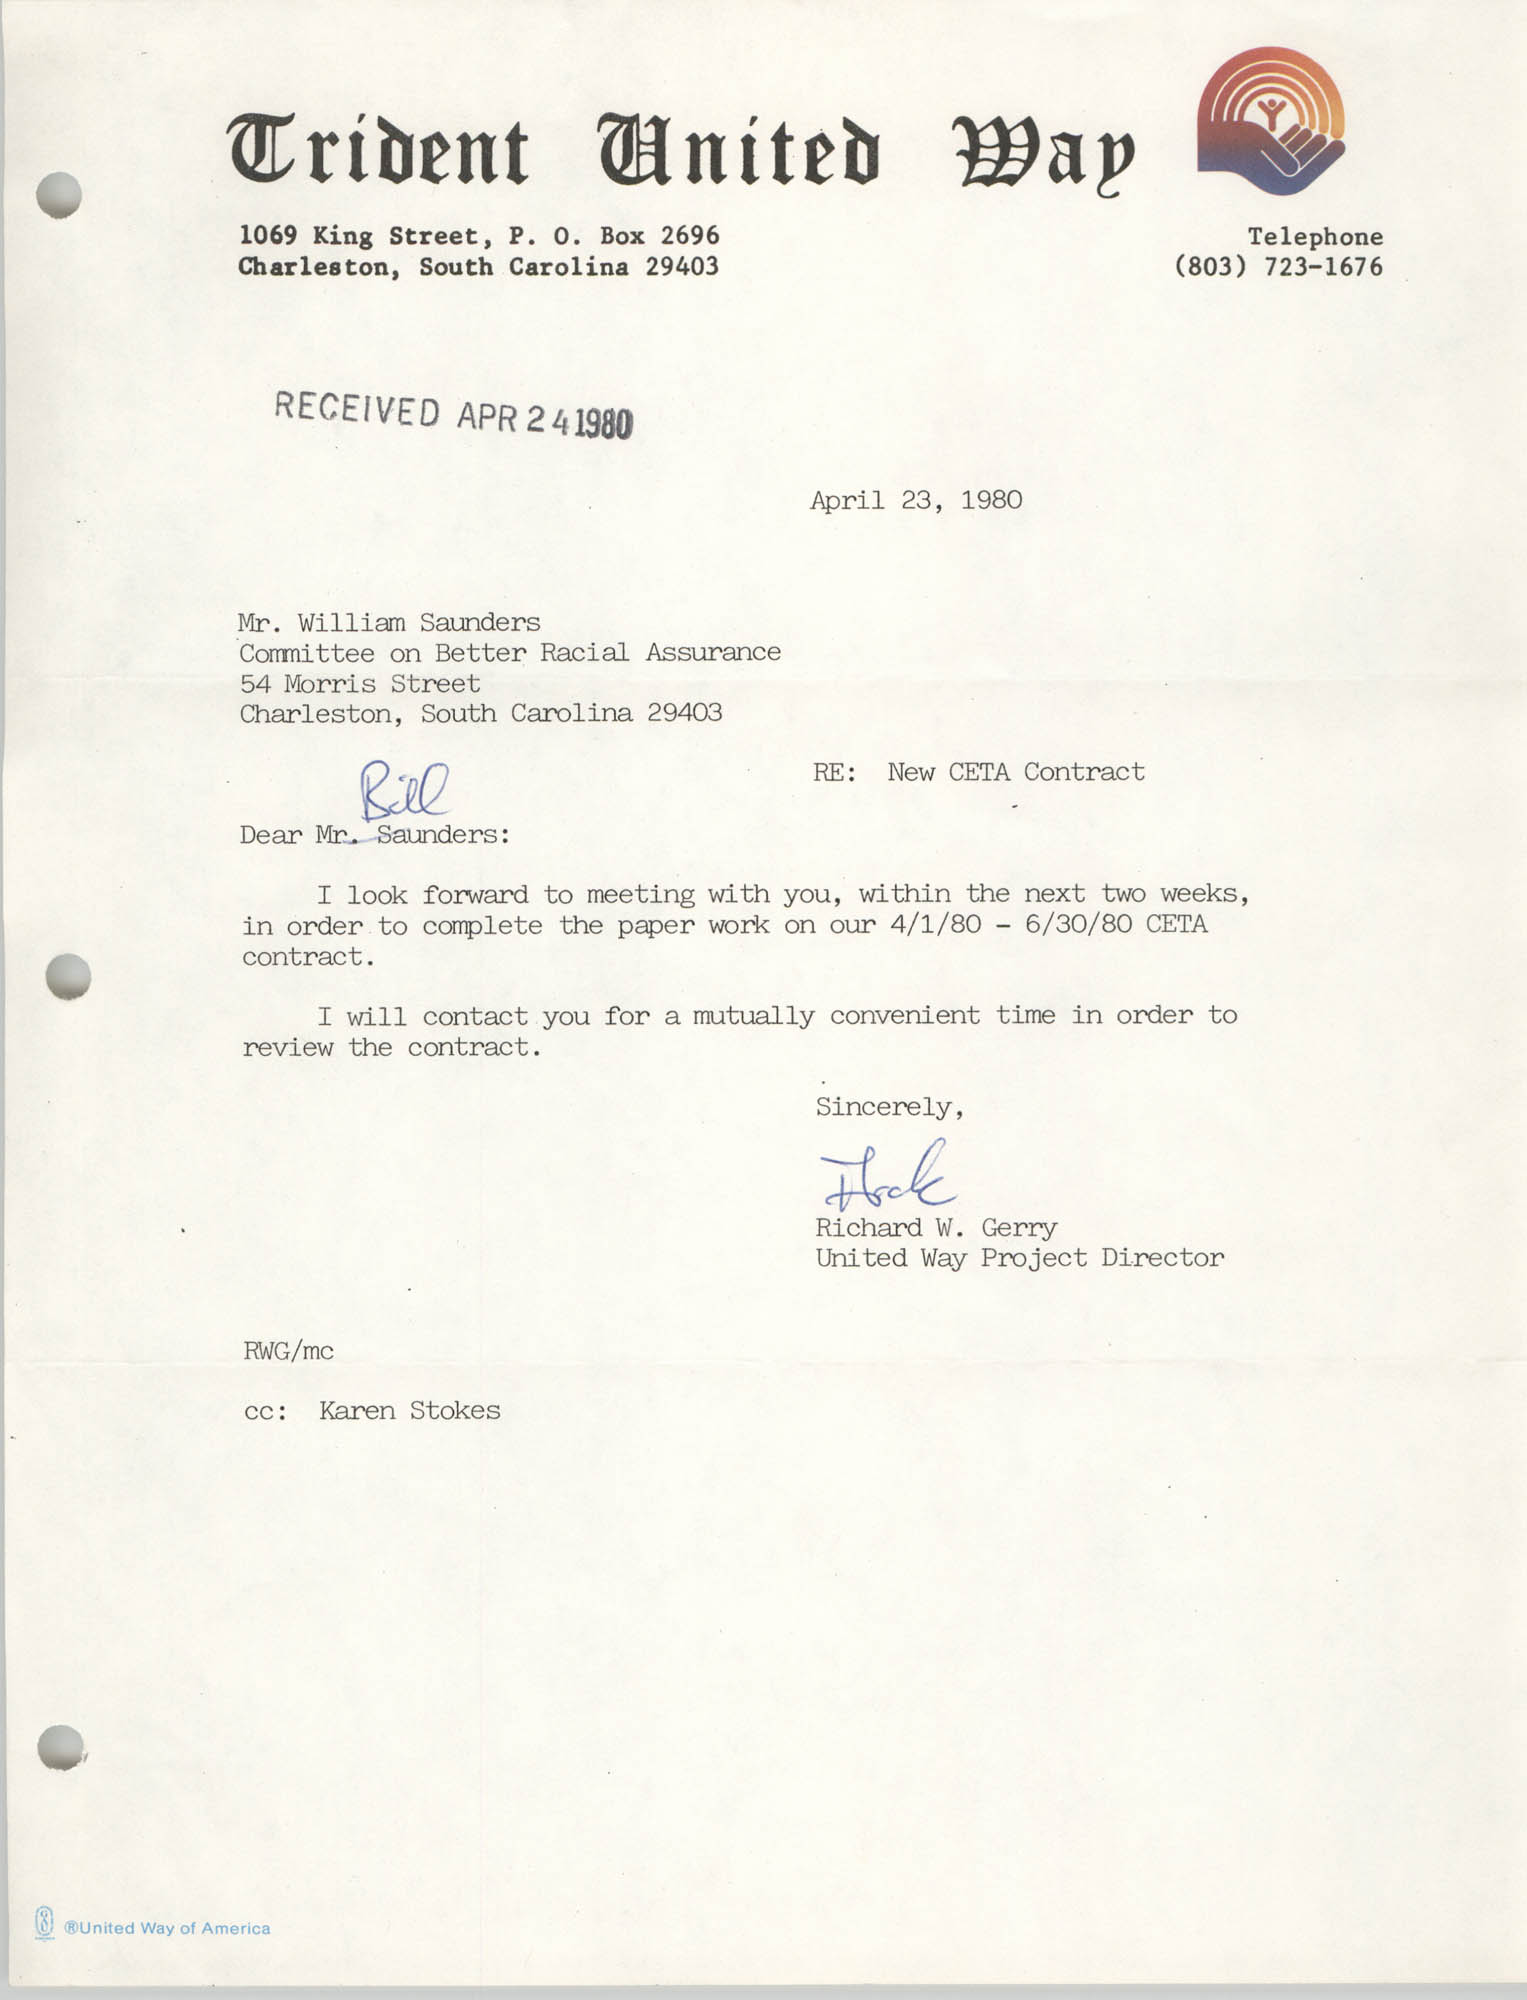 Letter from Richard W. Gerry to William Saunders, April 23, 1980